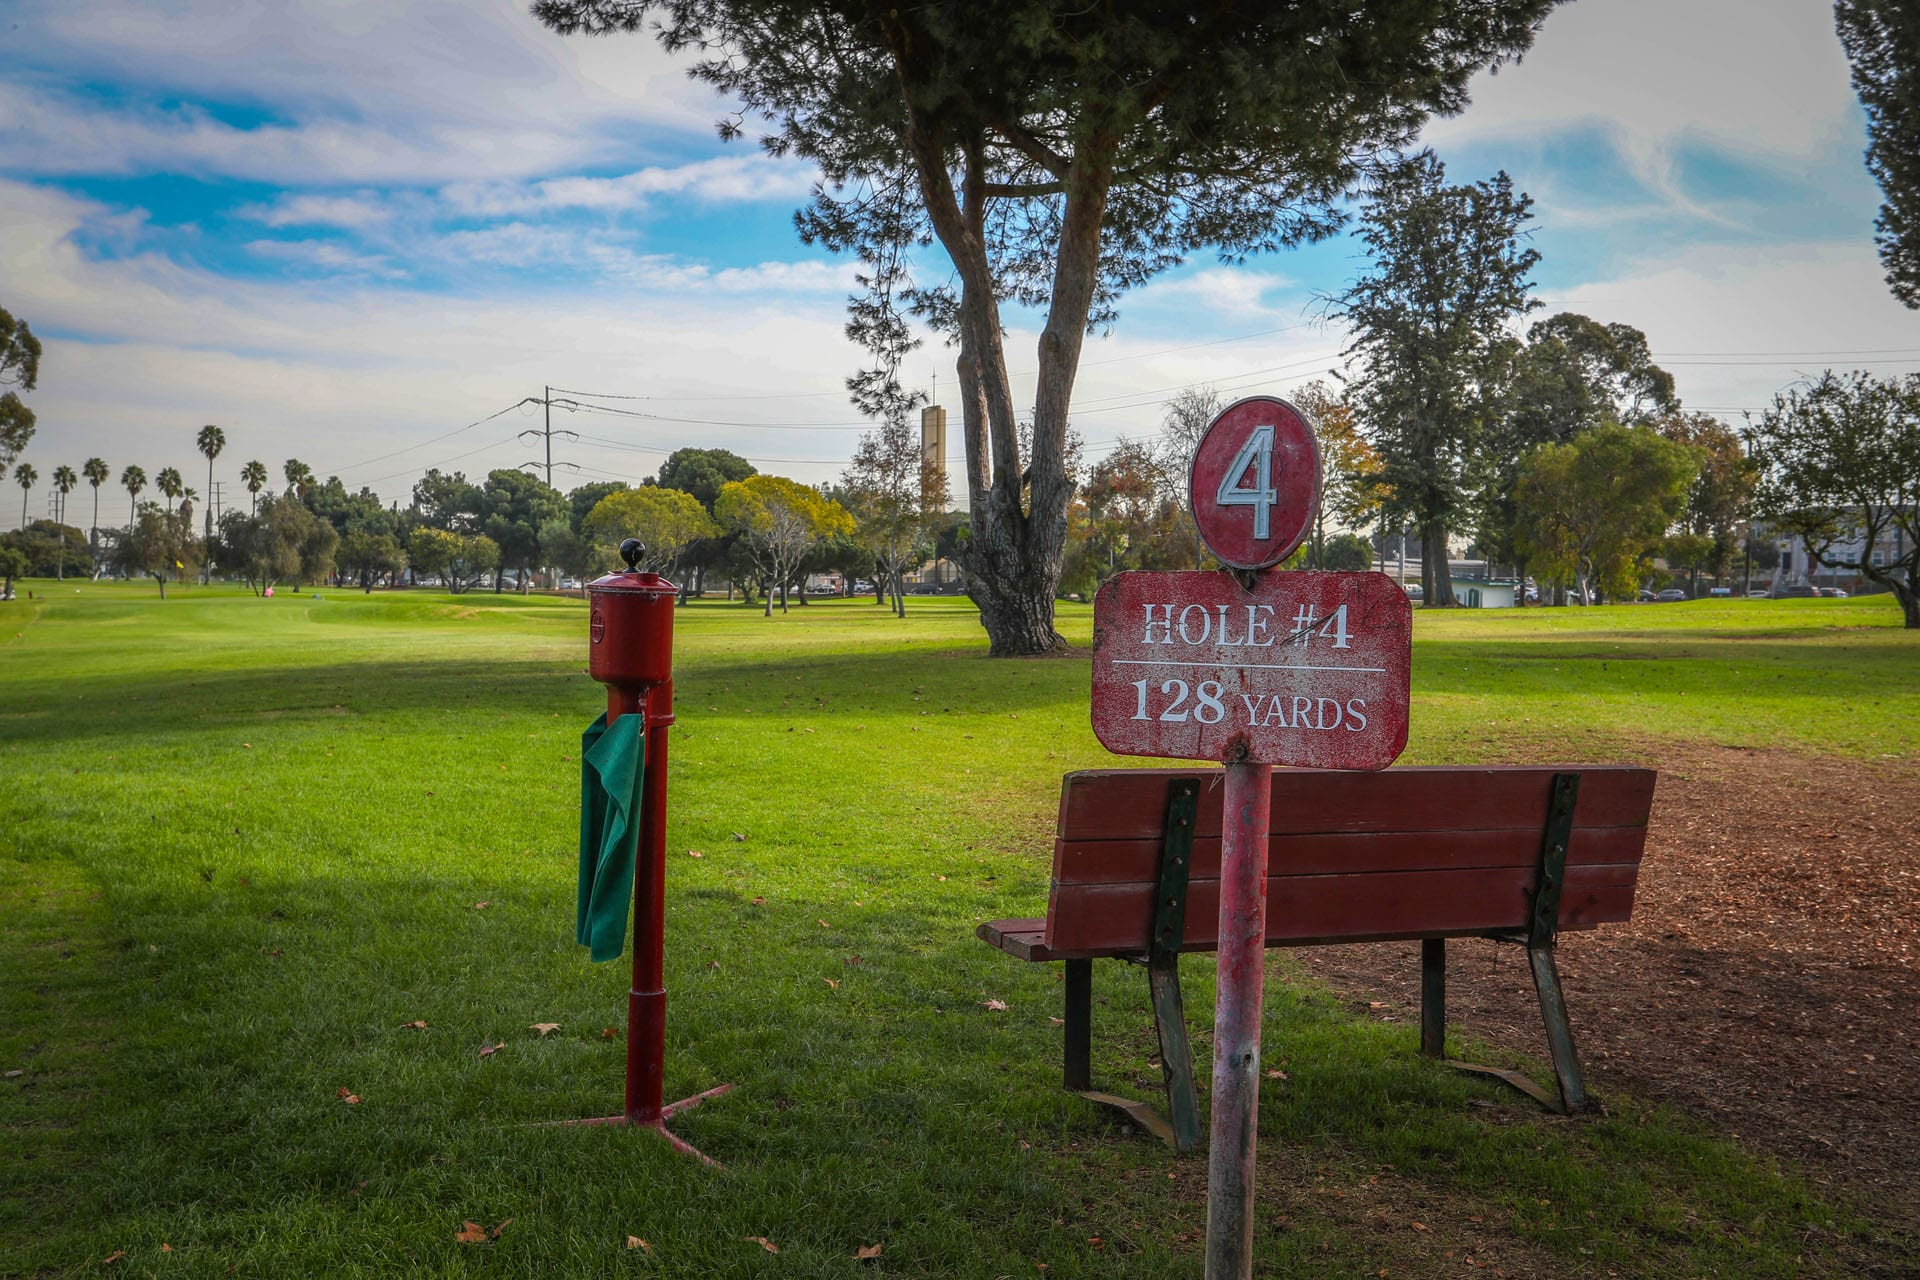 Hole #4 sign, bench, trees and green